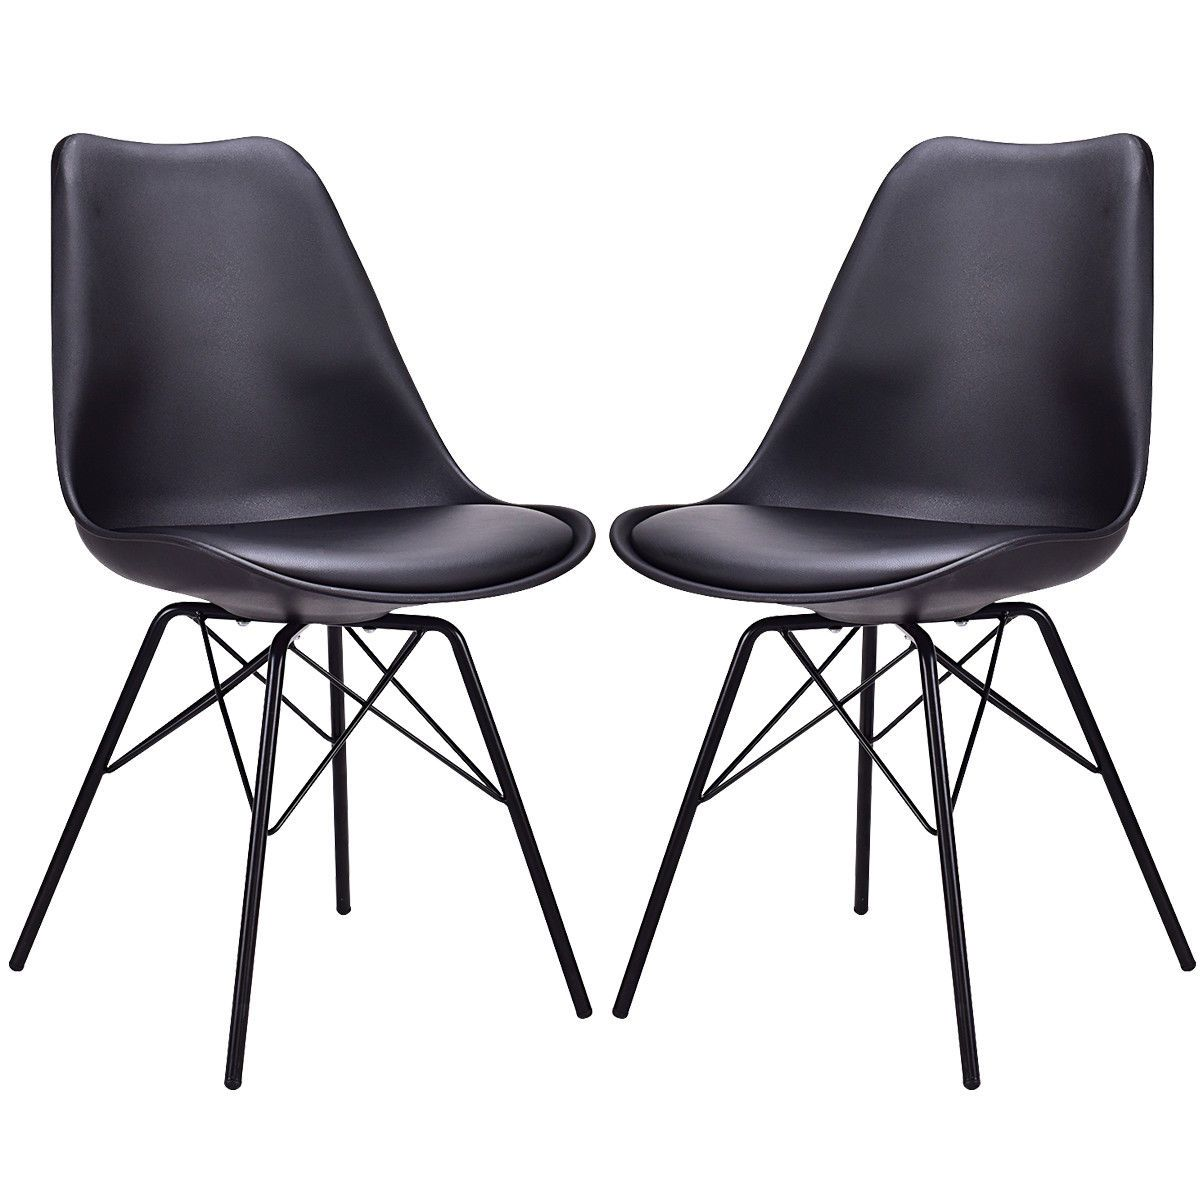 2 Piece Black Upholstered Armless Dining Chairs